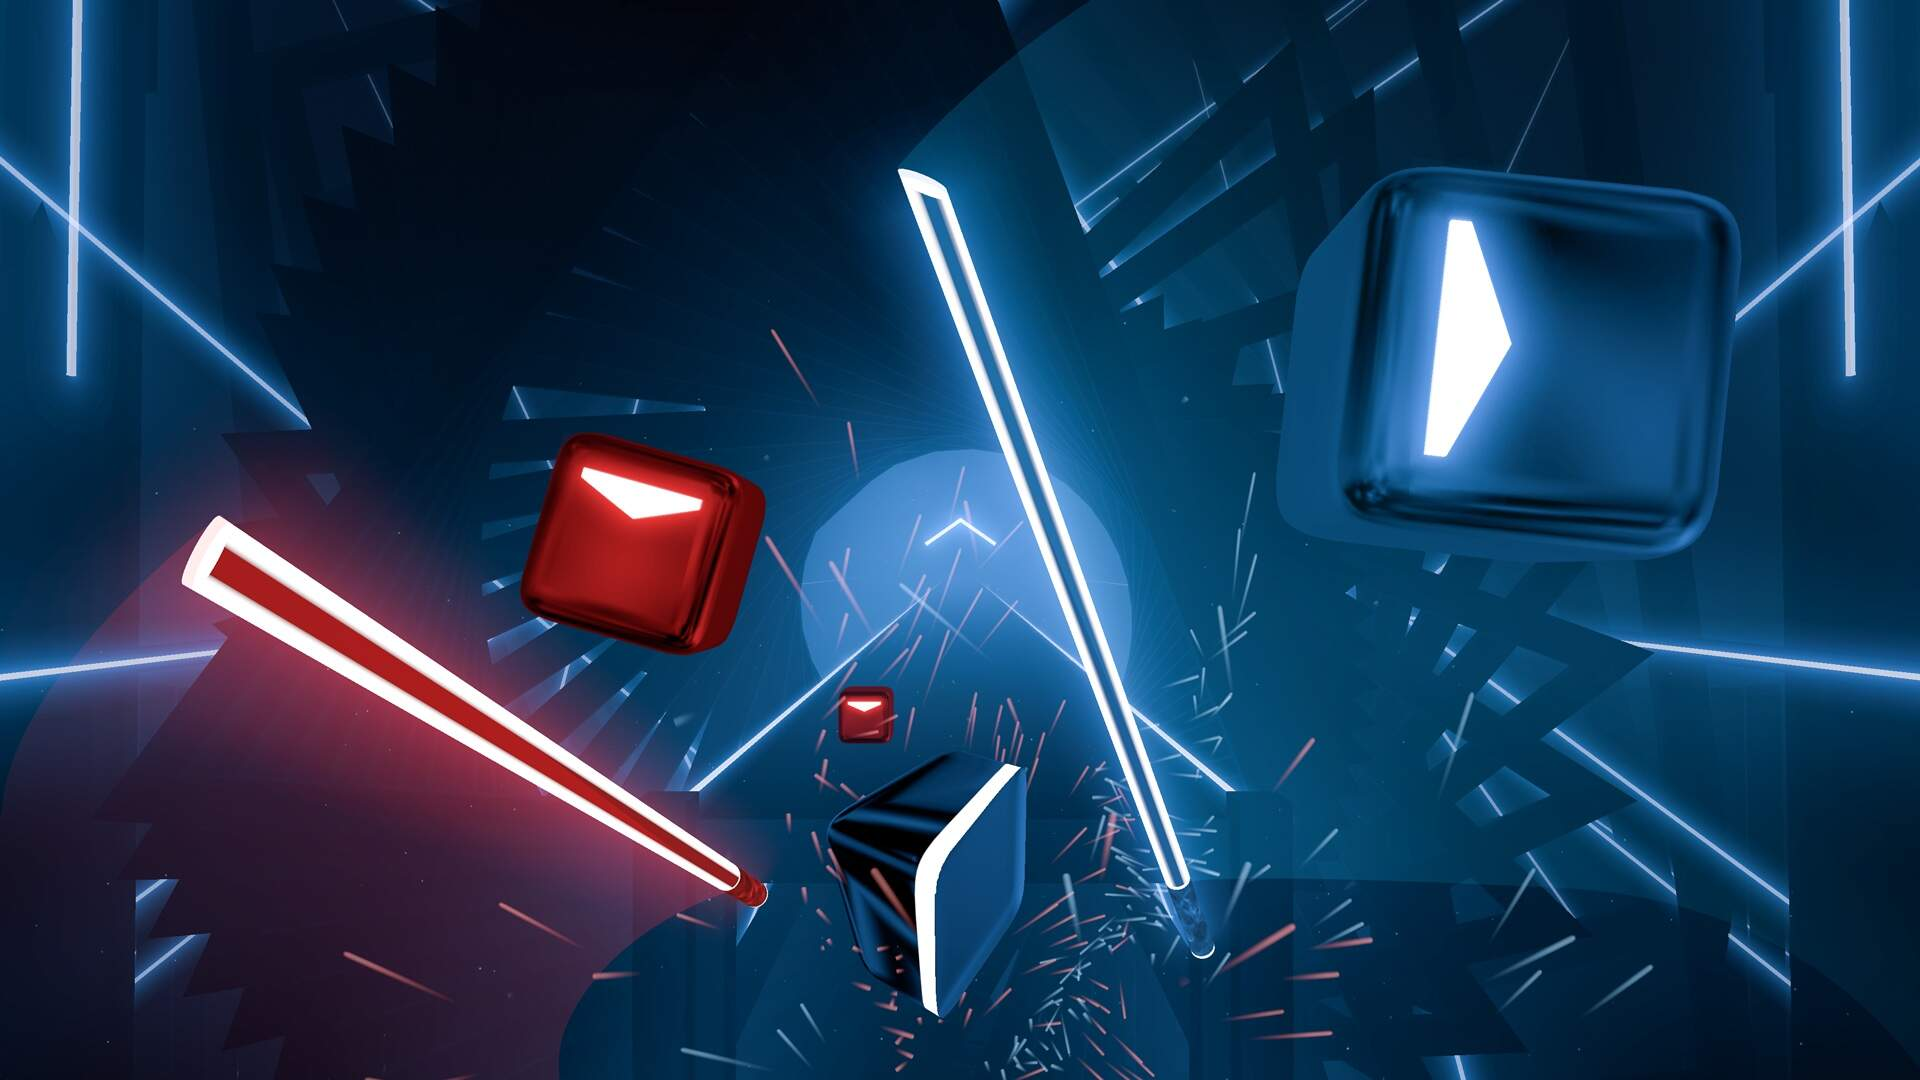 Facebook Expands Its VR Ambitions With Acquisition of the Studio Behind Beat Saber